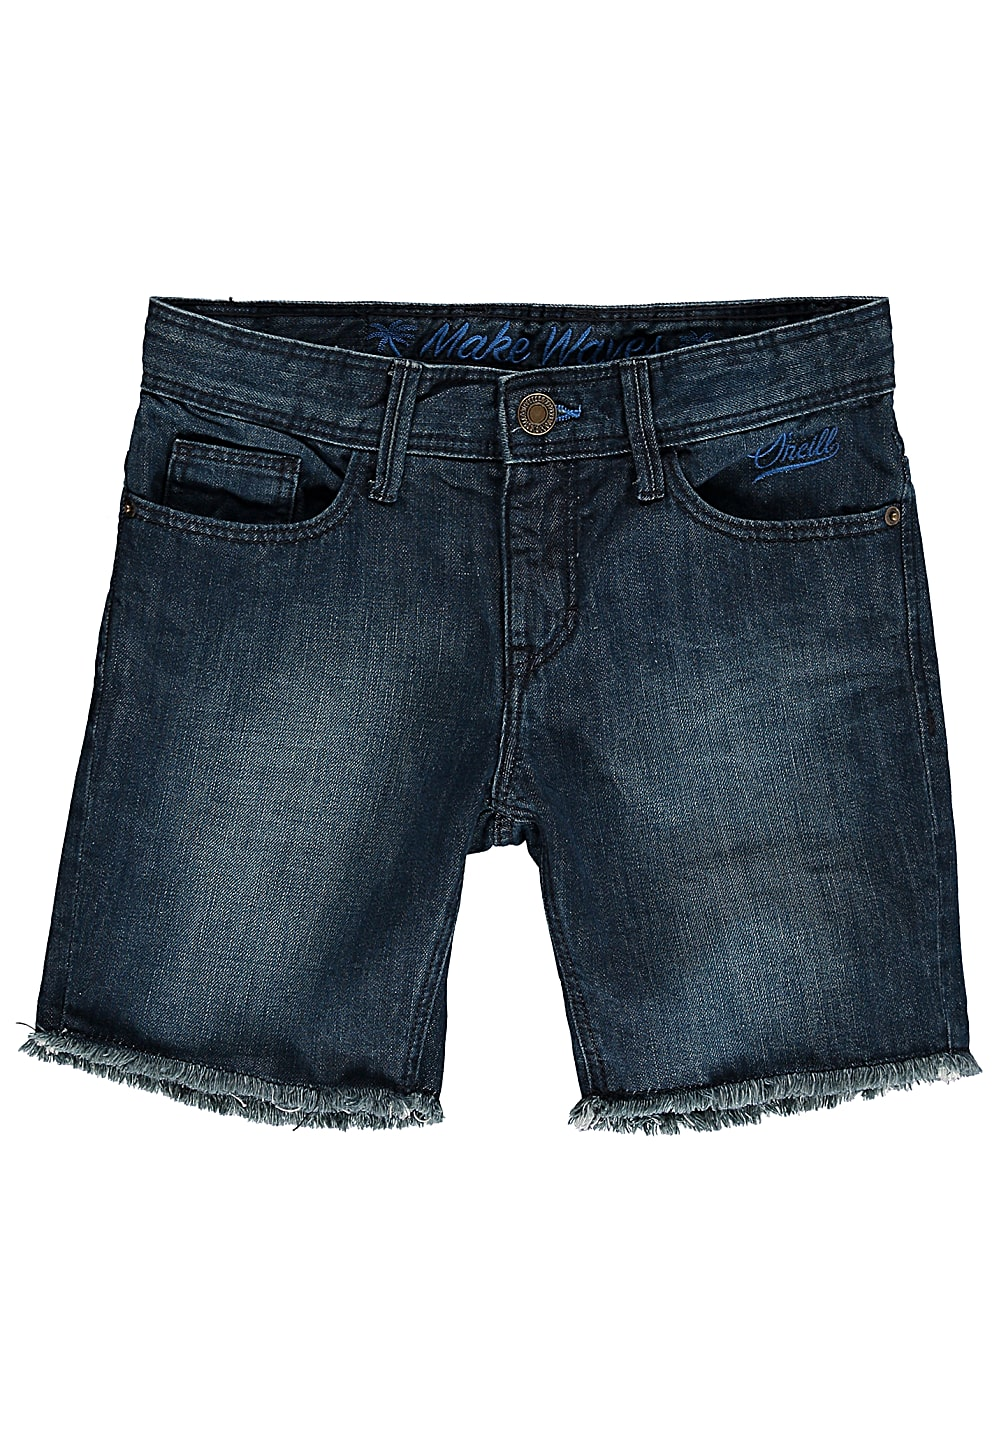 O'Neill Make Waves Shorts für Jungs Blau